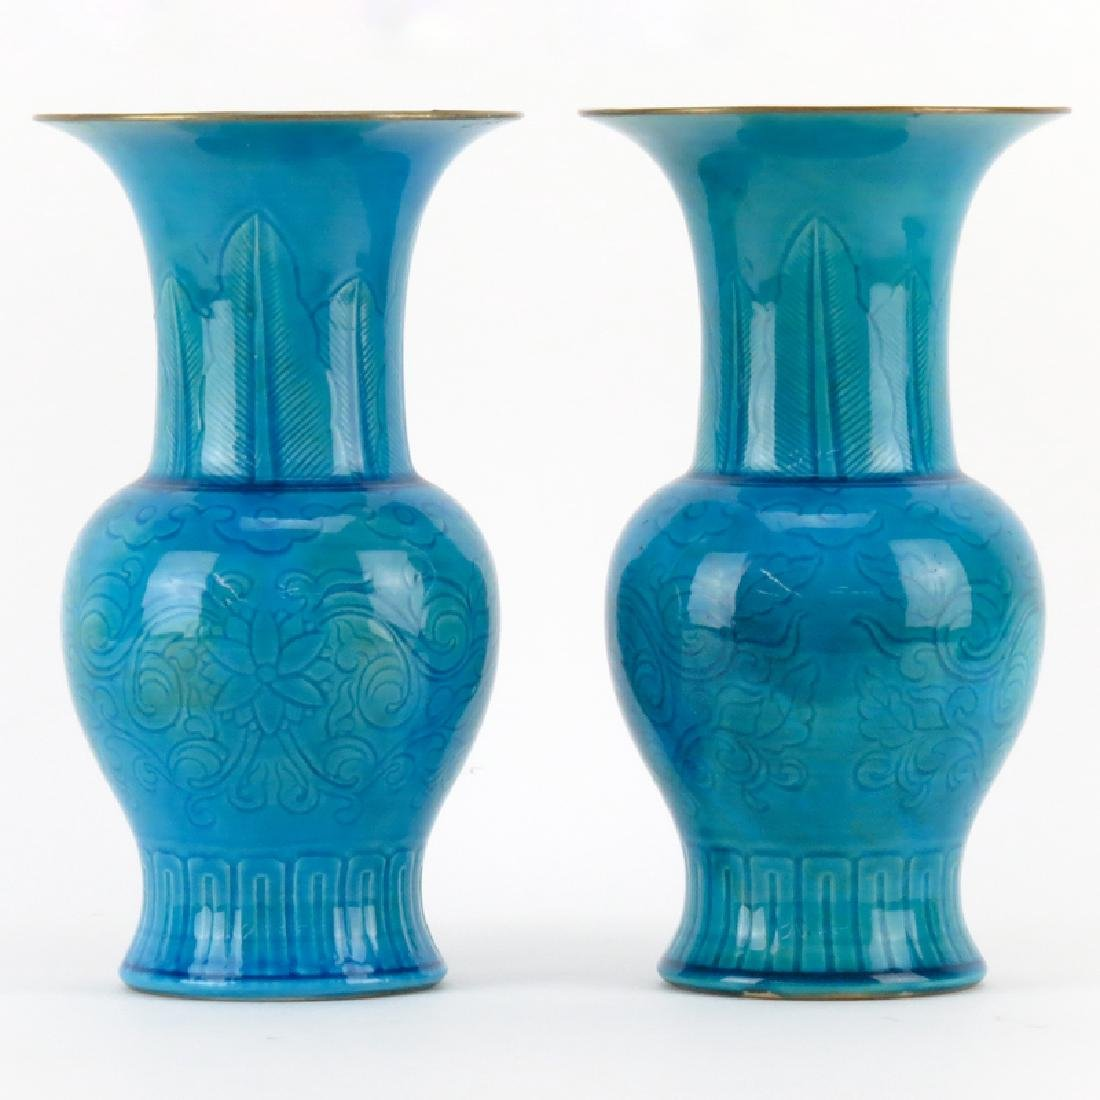 Pair of 19th Century Chinese Turquoise Glazed Baluster